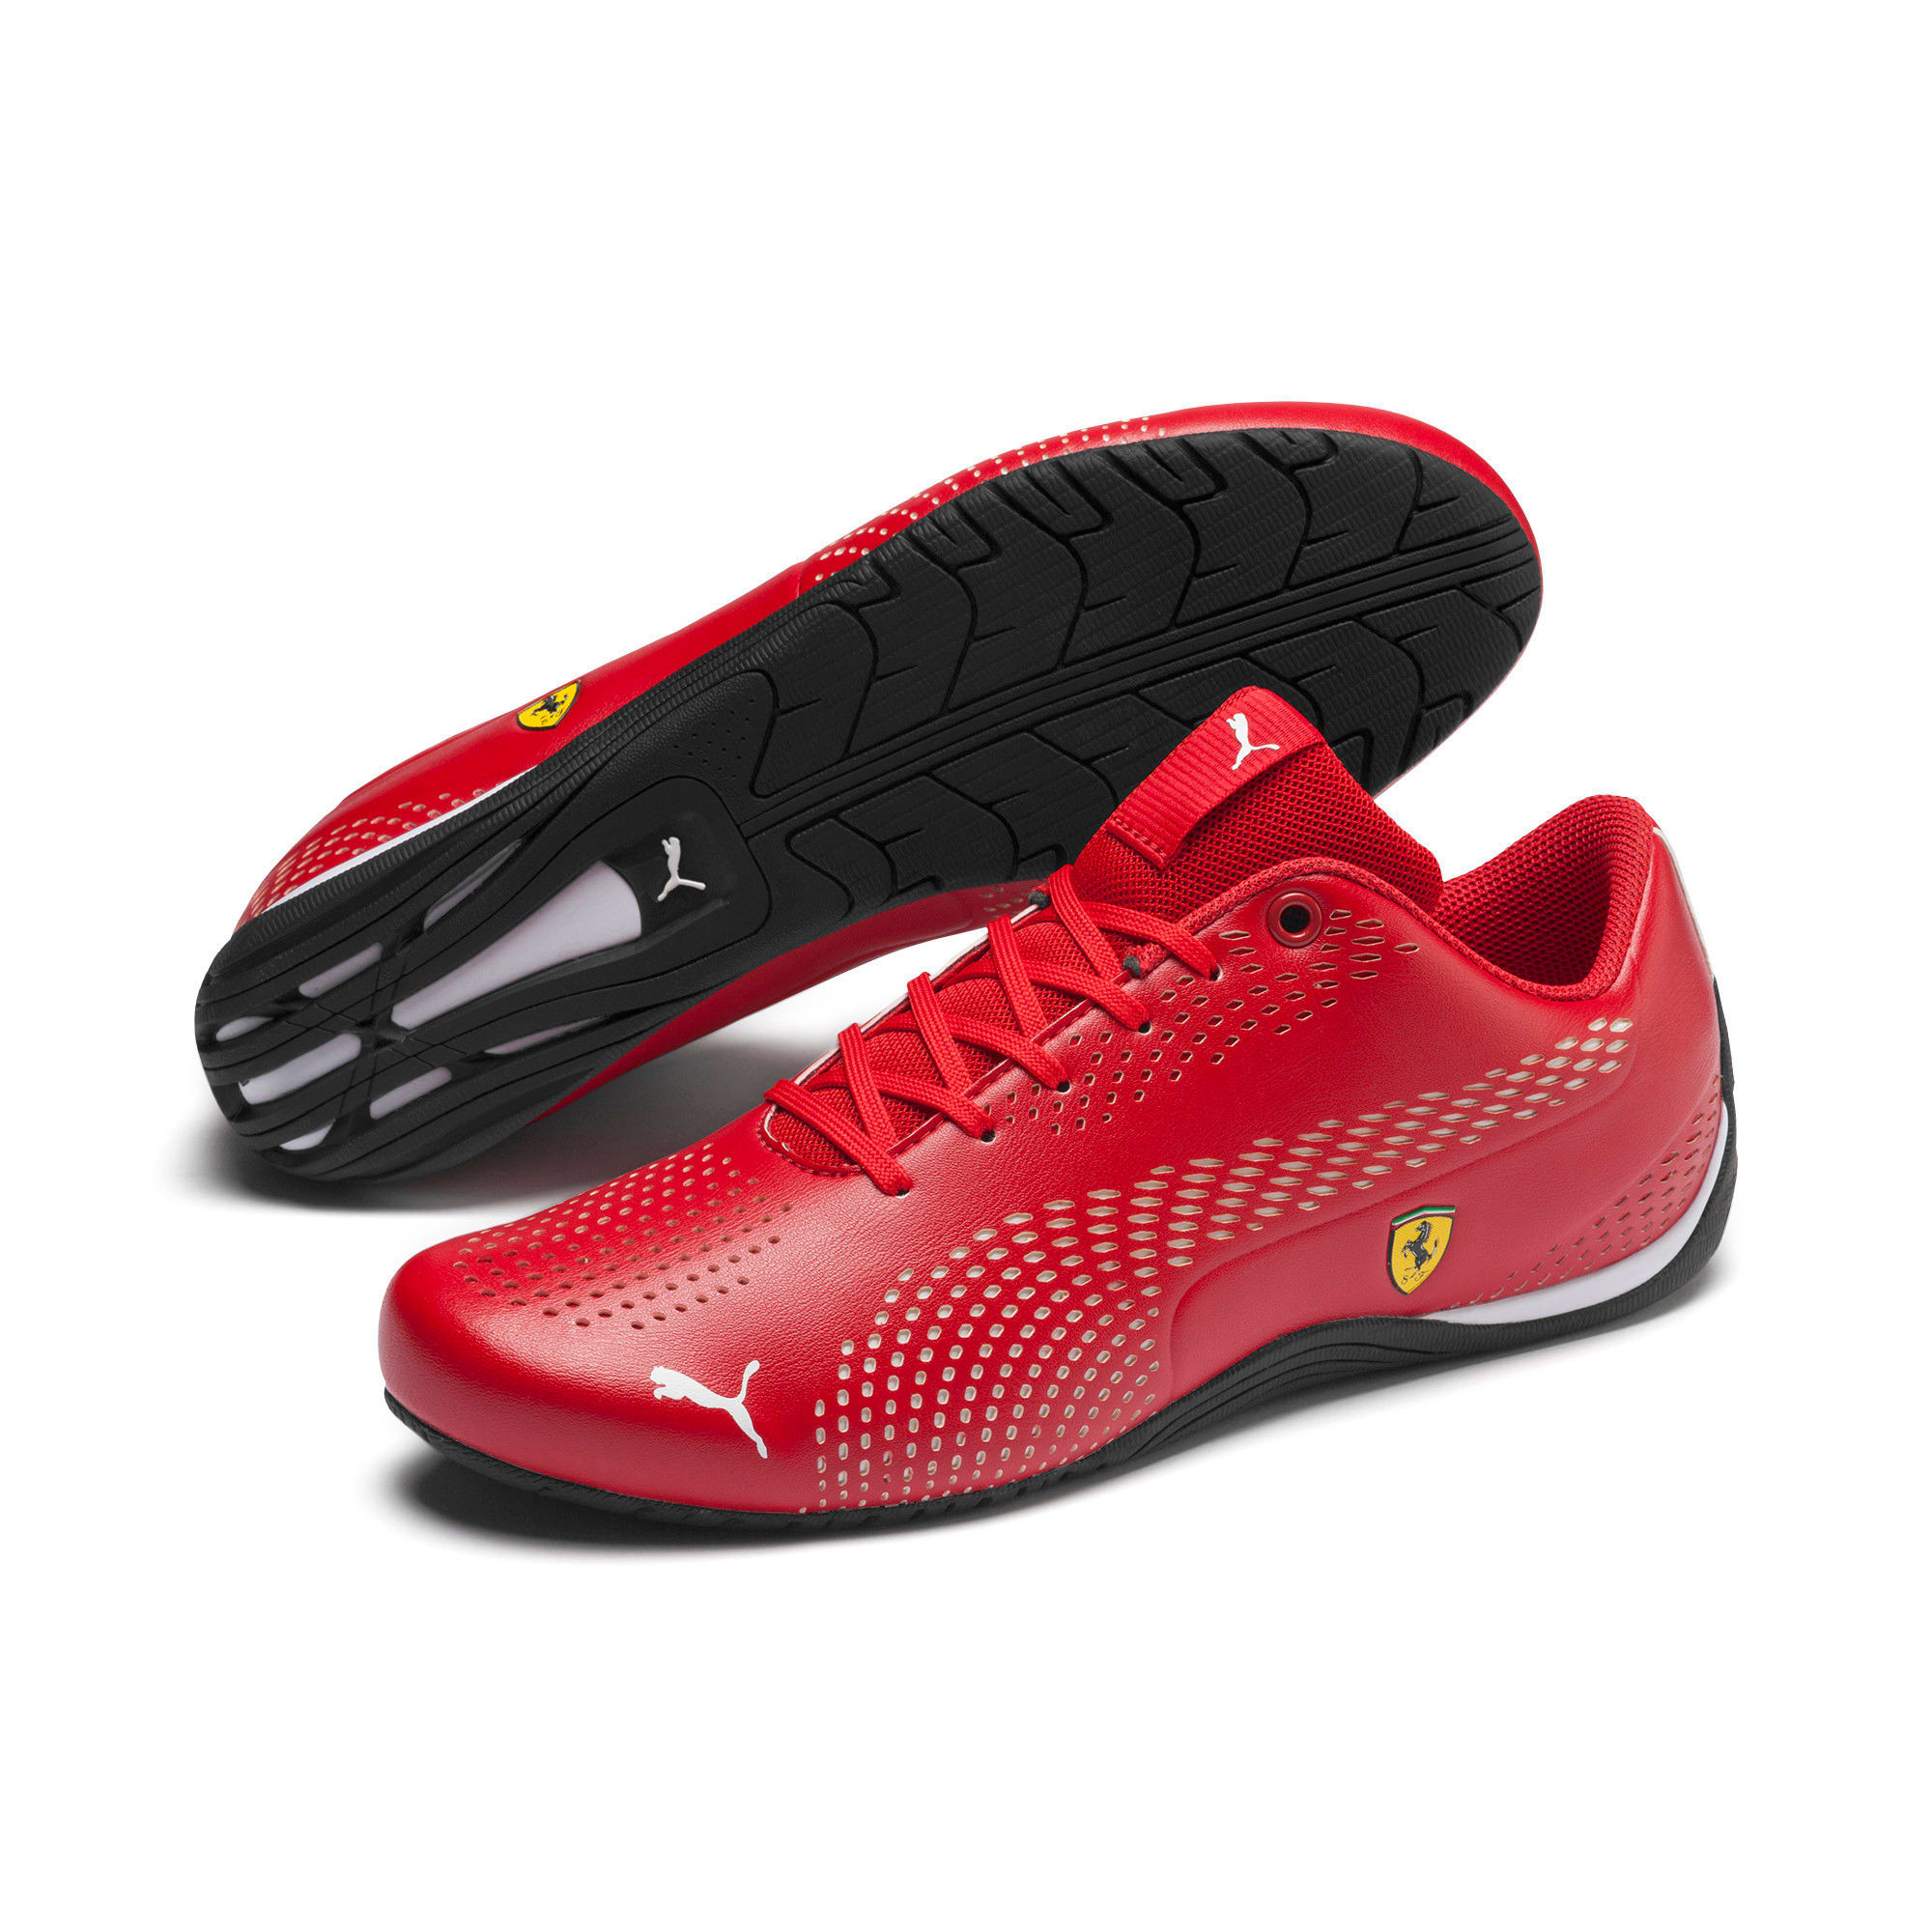 Thumbnail 3 of Ferrari Drift Cat 5 Ultra II Trainers, Rosso Corsa-Puma White, medium